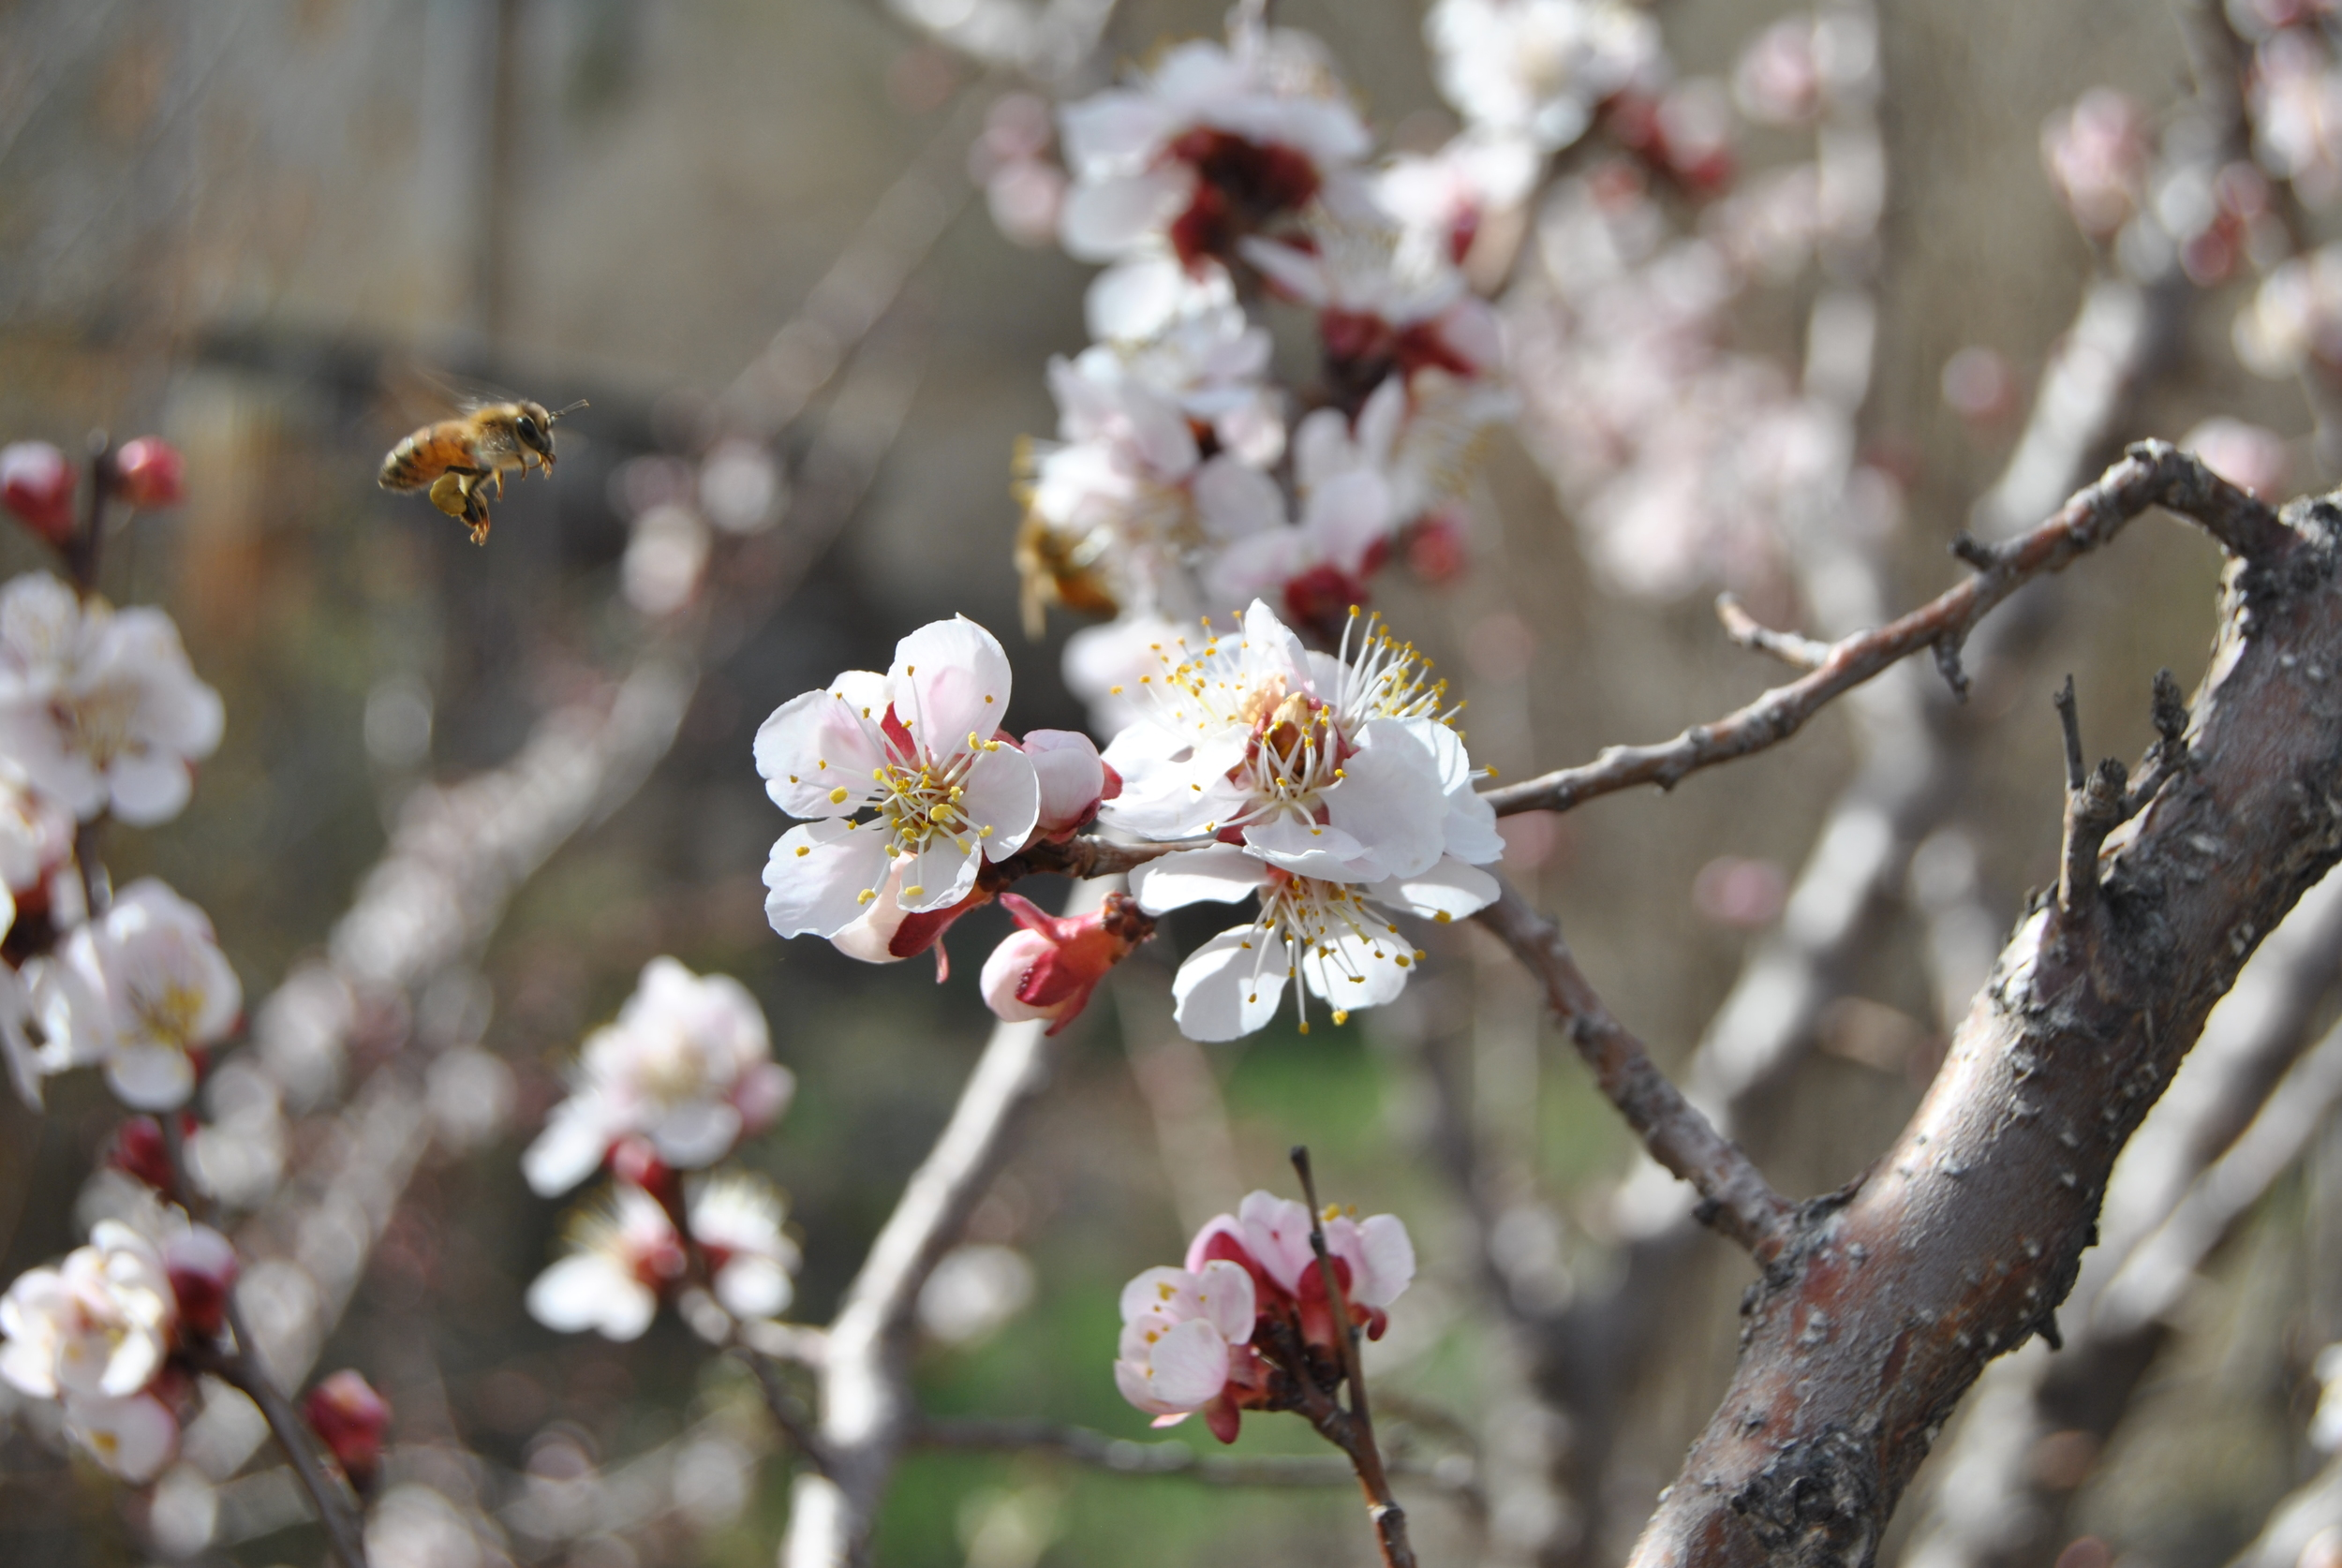 APRICOT BLOSSOMS  A honey bee on its way to collect some sweet apricot nectar.